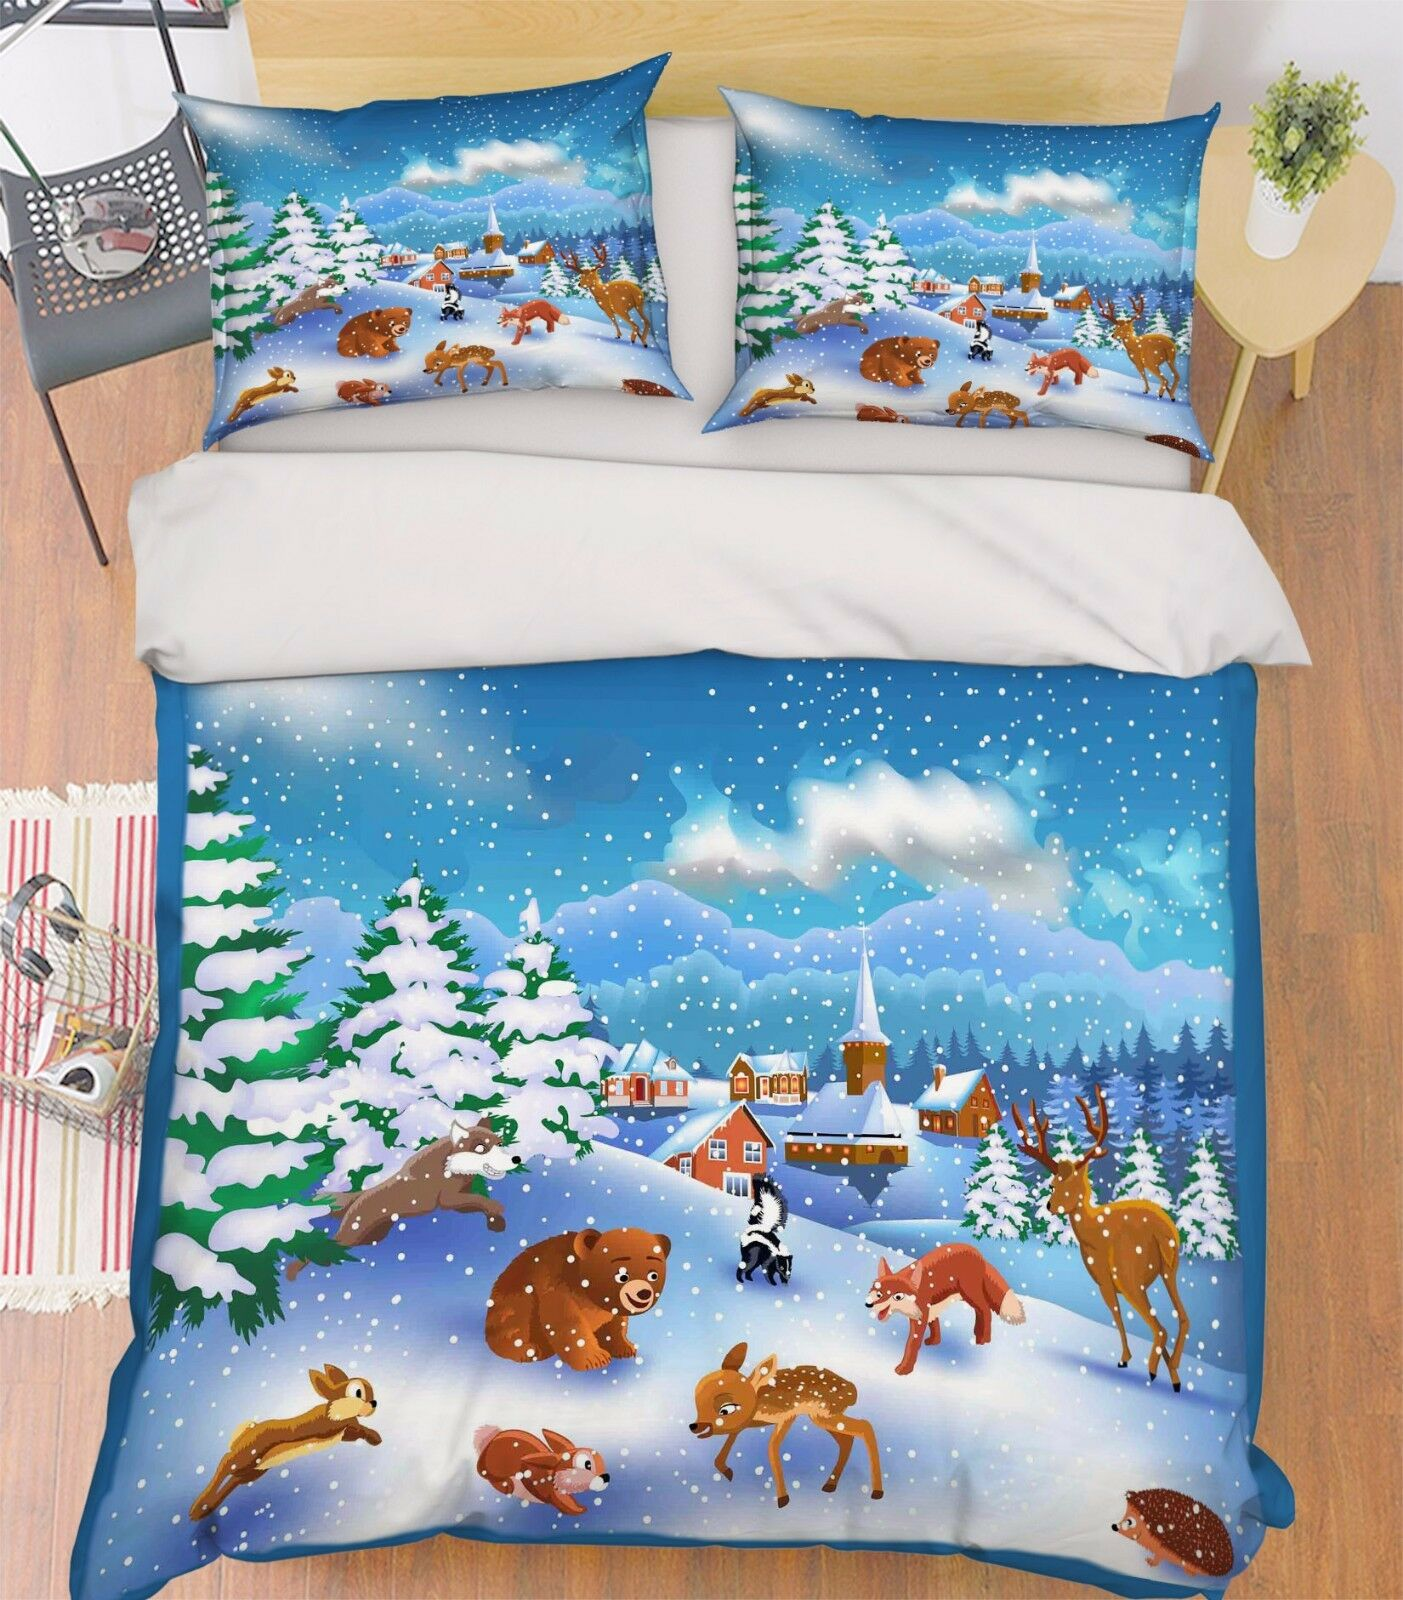 3D Snowflake Animal Town 6 Bed Pillowcases Quilt Duvet Cover Set Single Queen CA